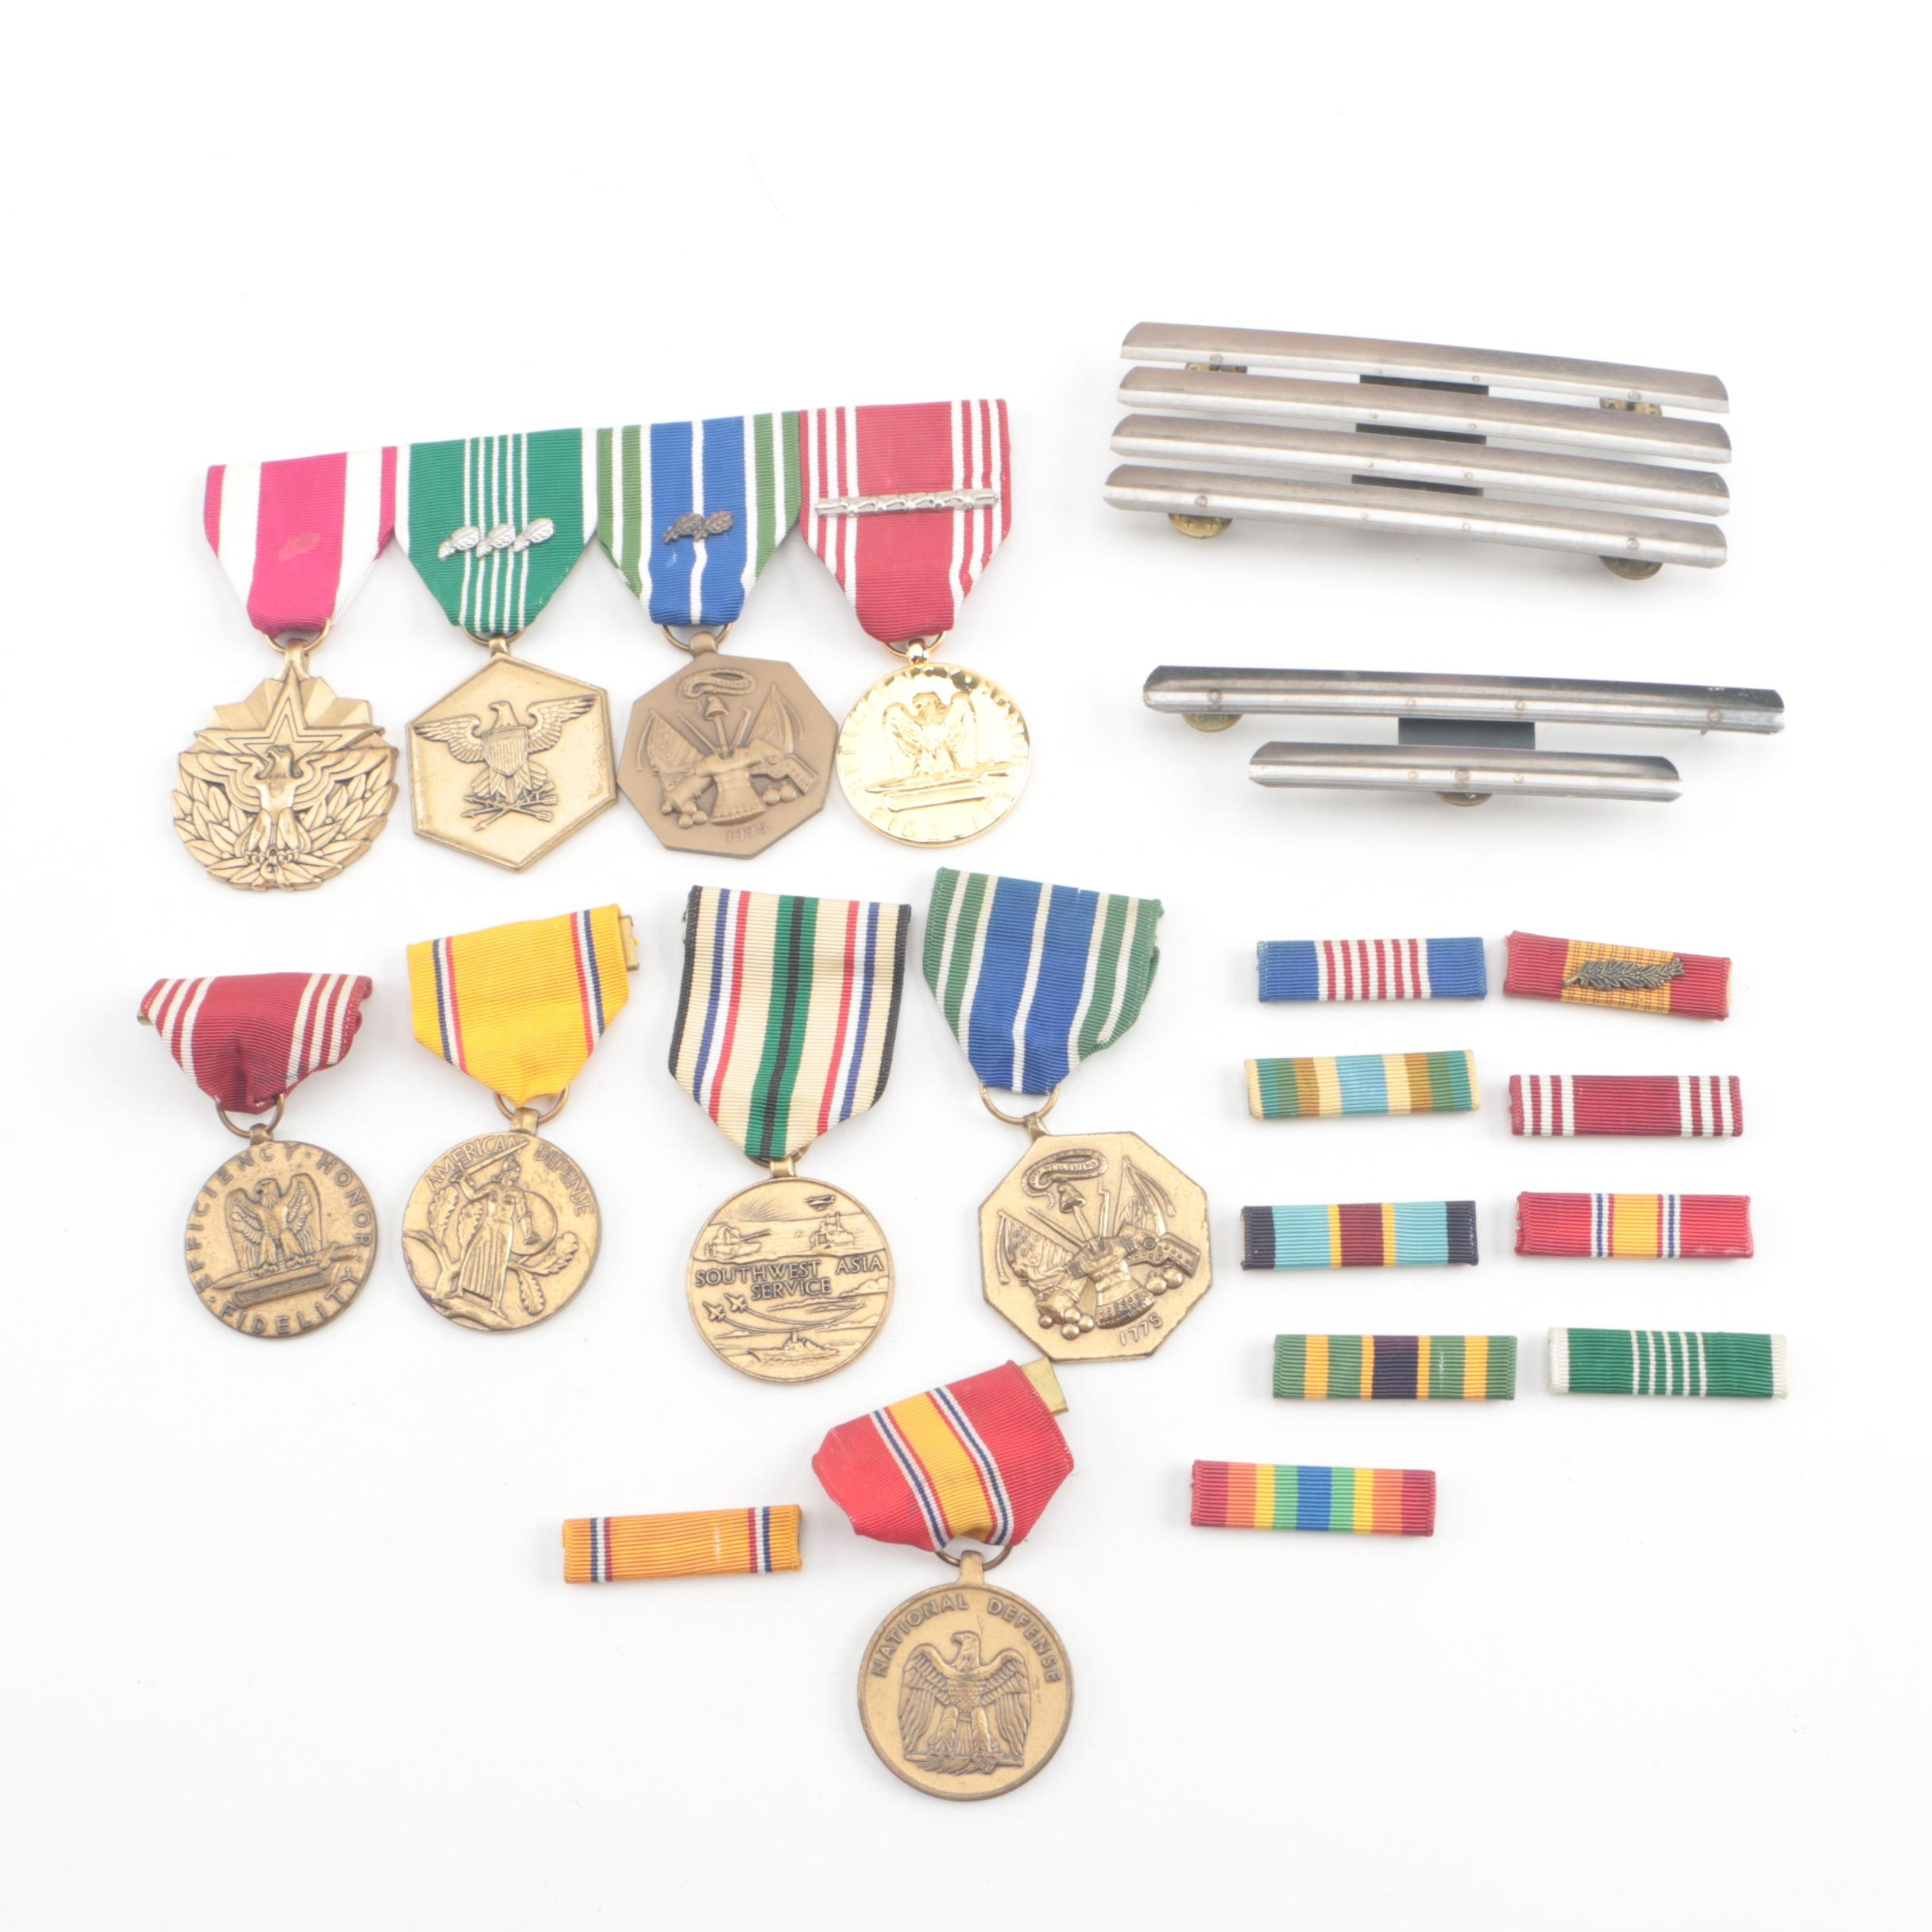 Vintage Military Medals and Ribbons